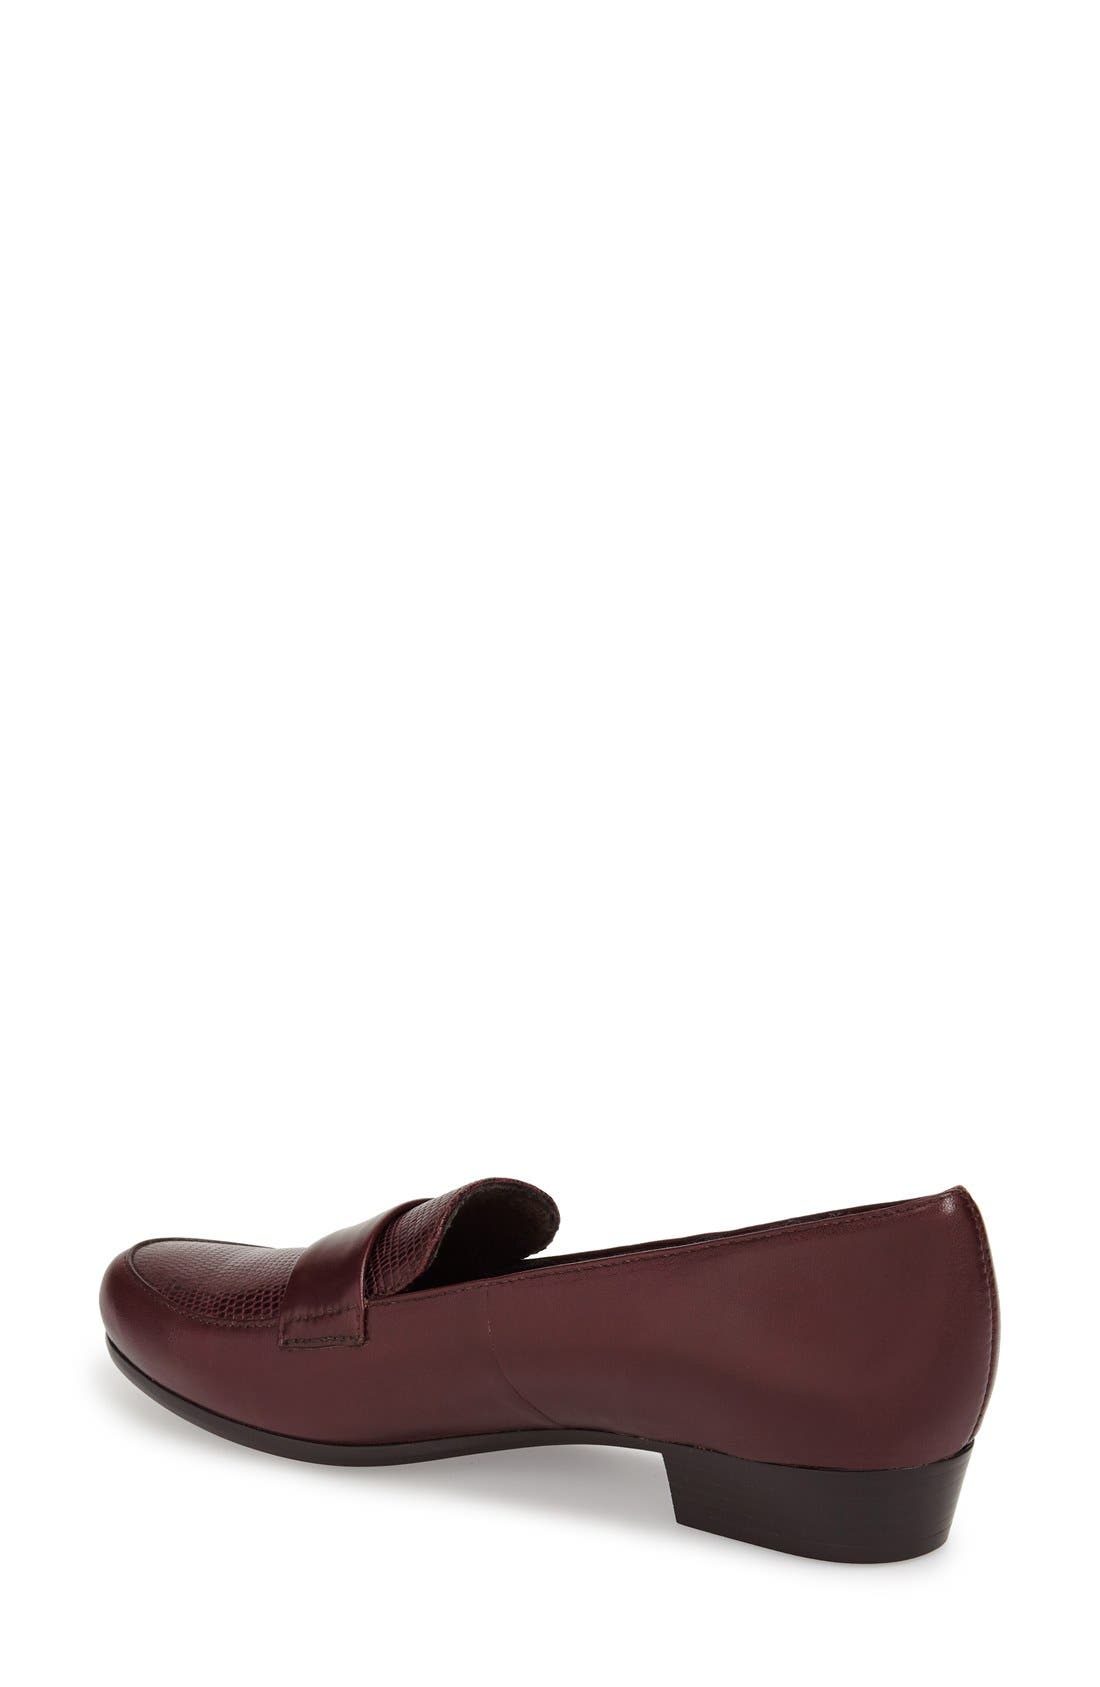 'Kiera' Loafer,                             Alternate thumbnail 2, color,                             Wine Lizard Print Leather